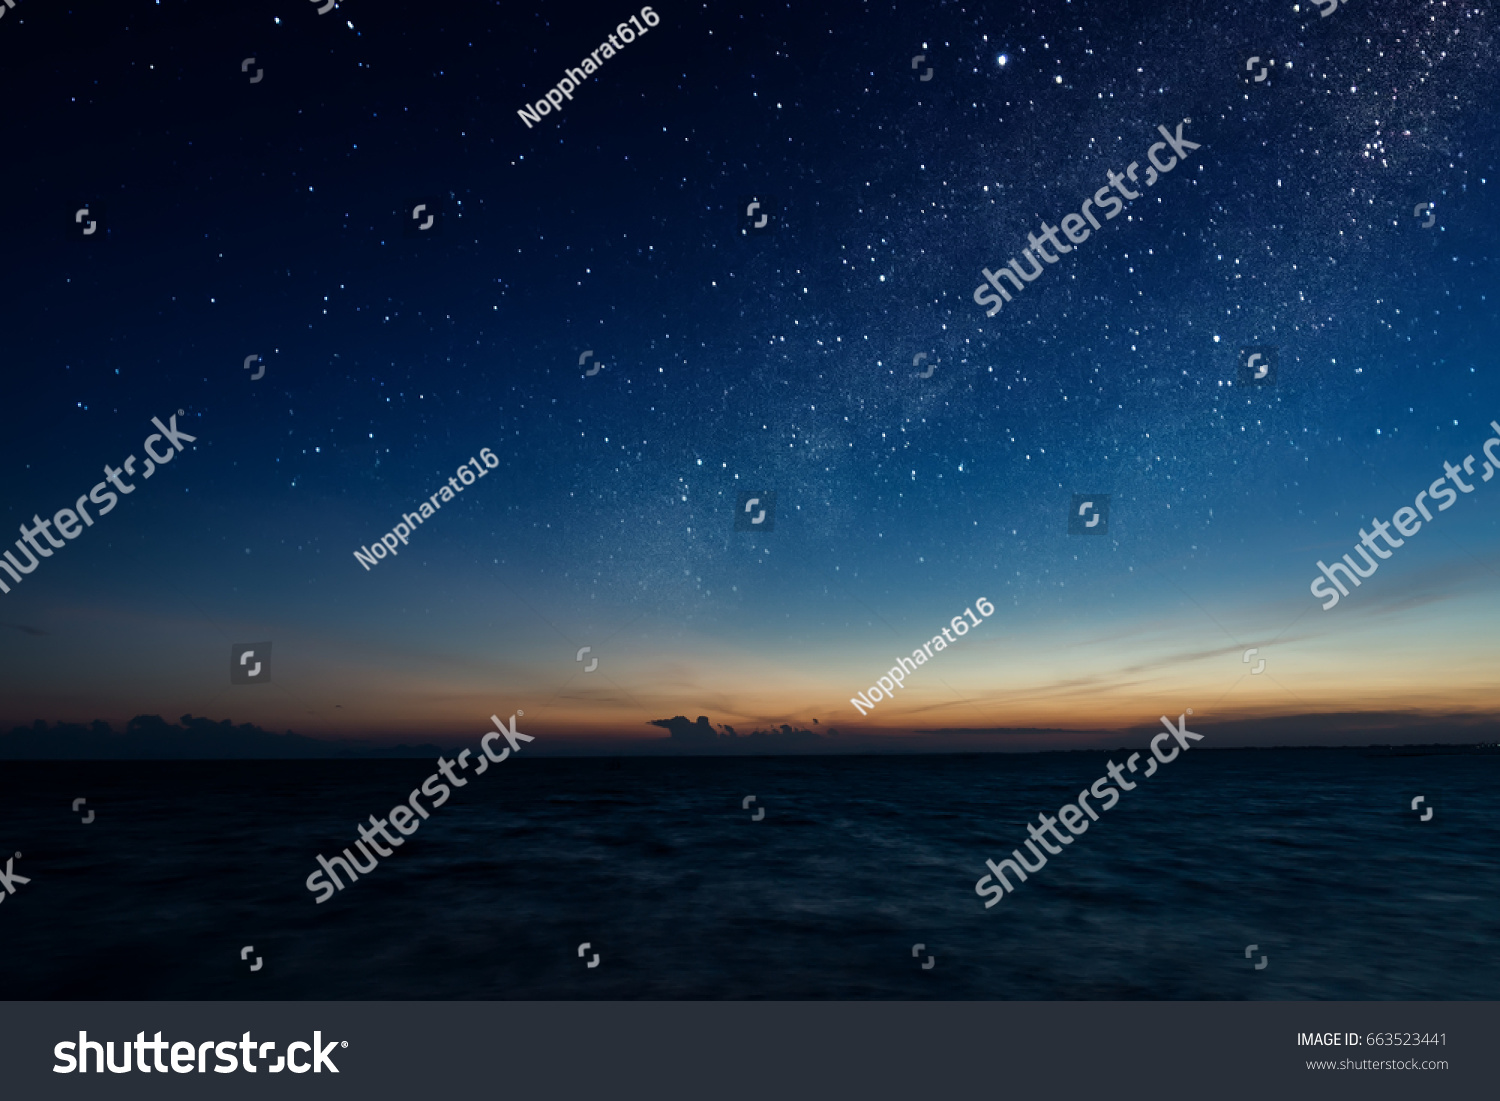 The sky with star at the lake in the twilight after sunset. #663523441